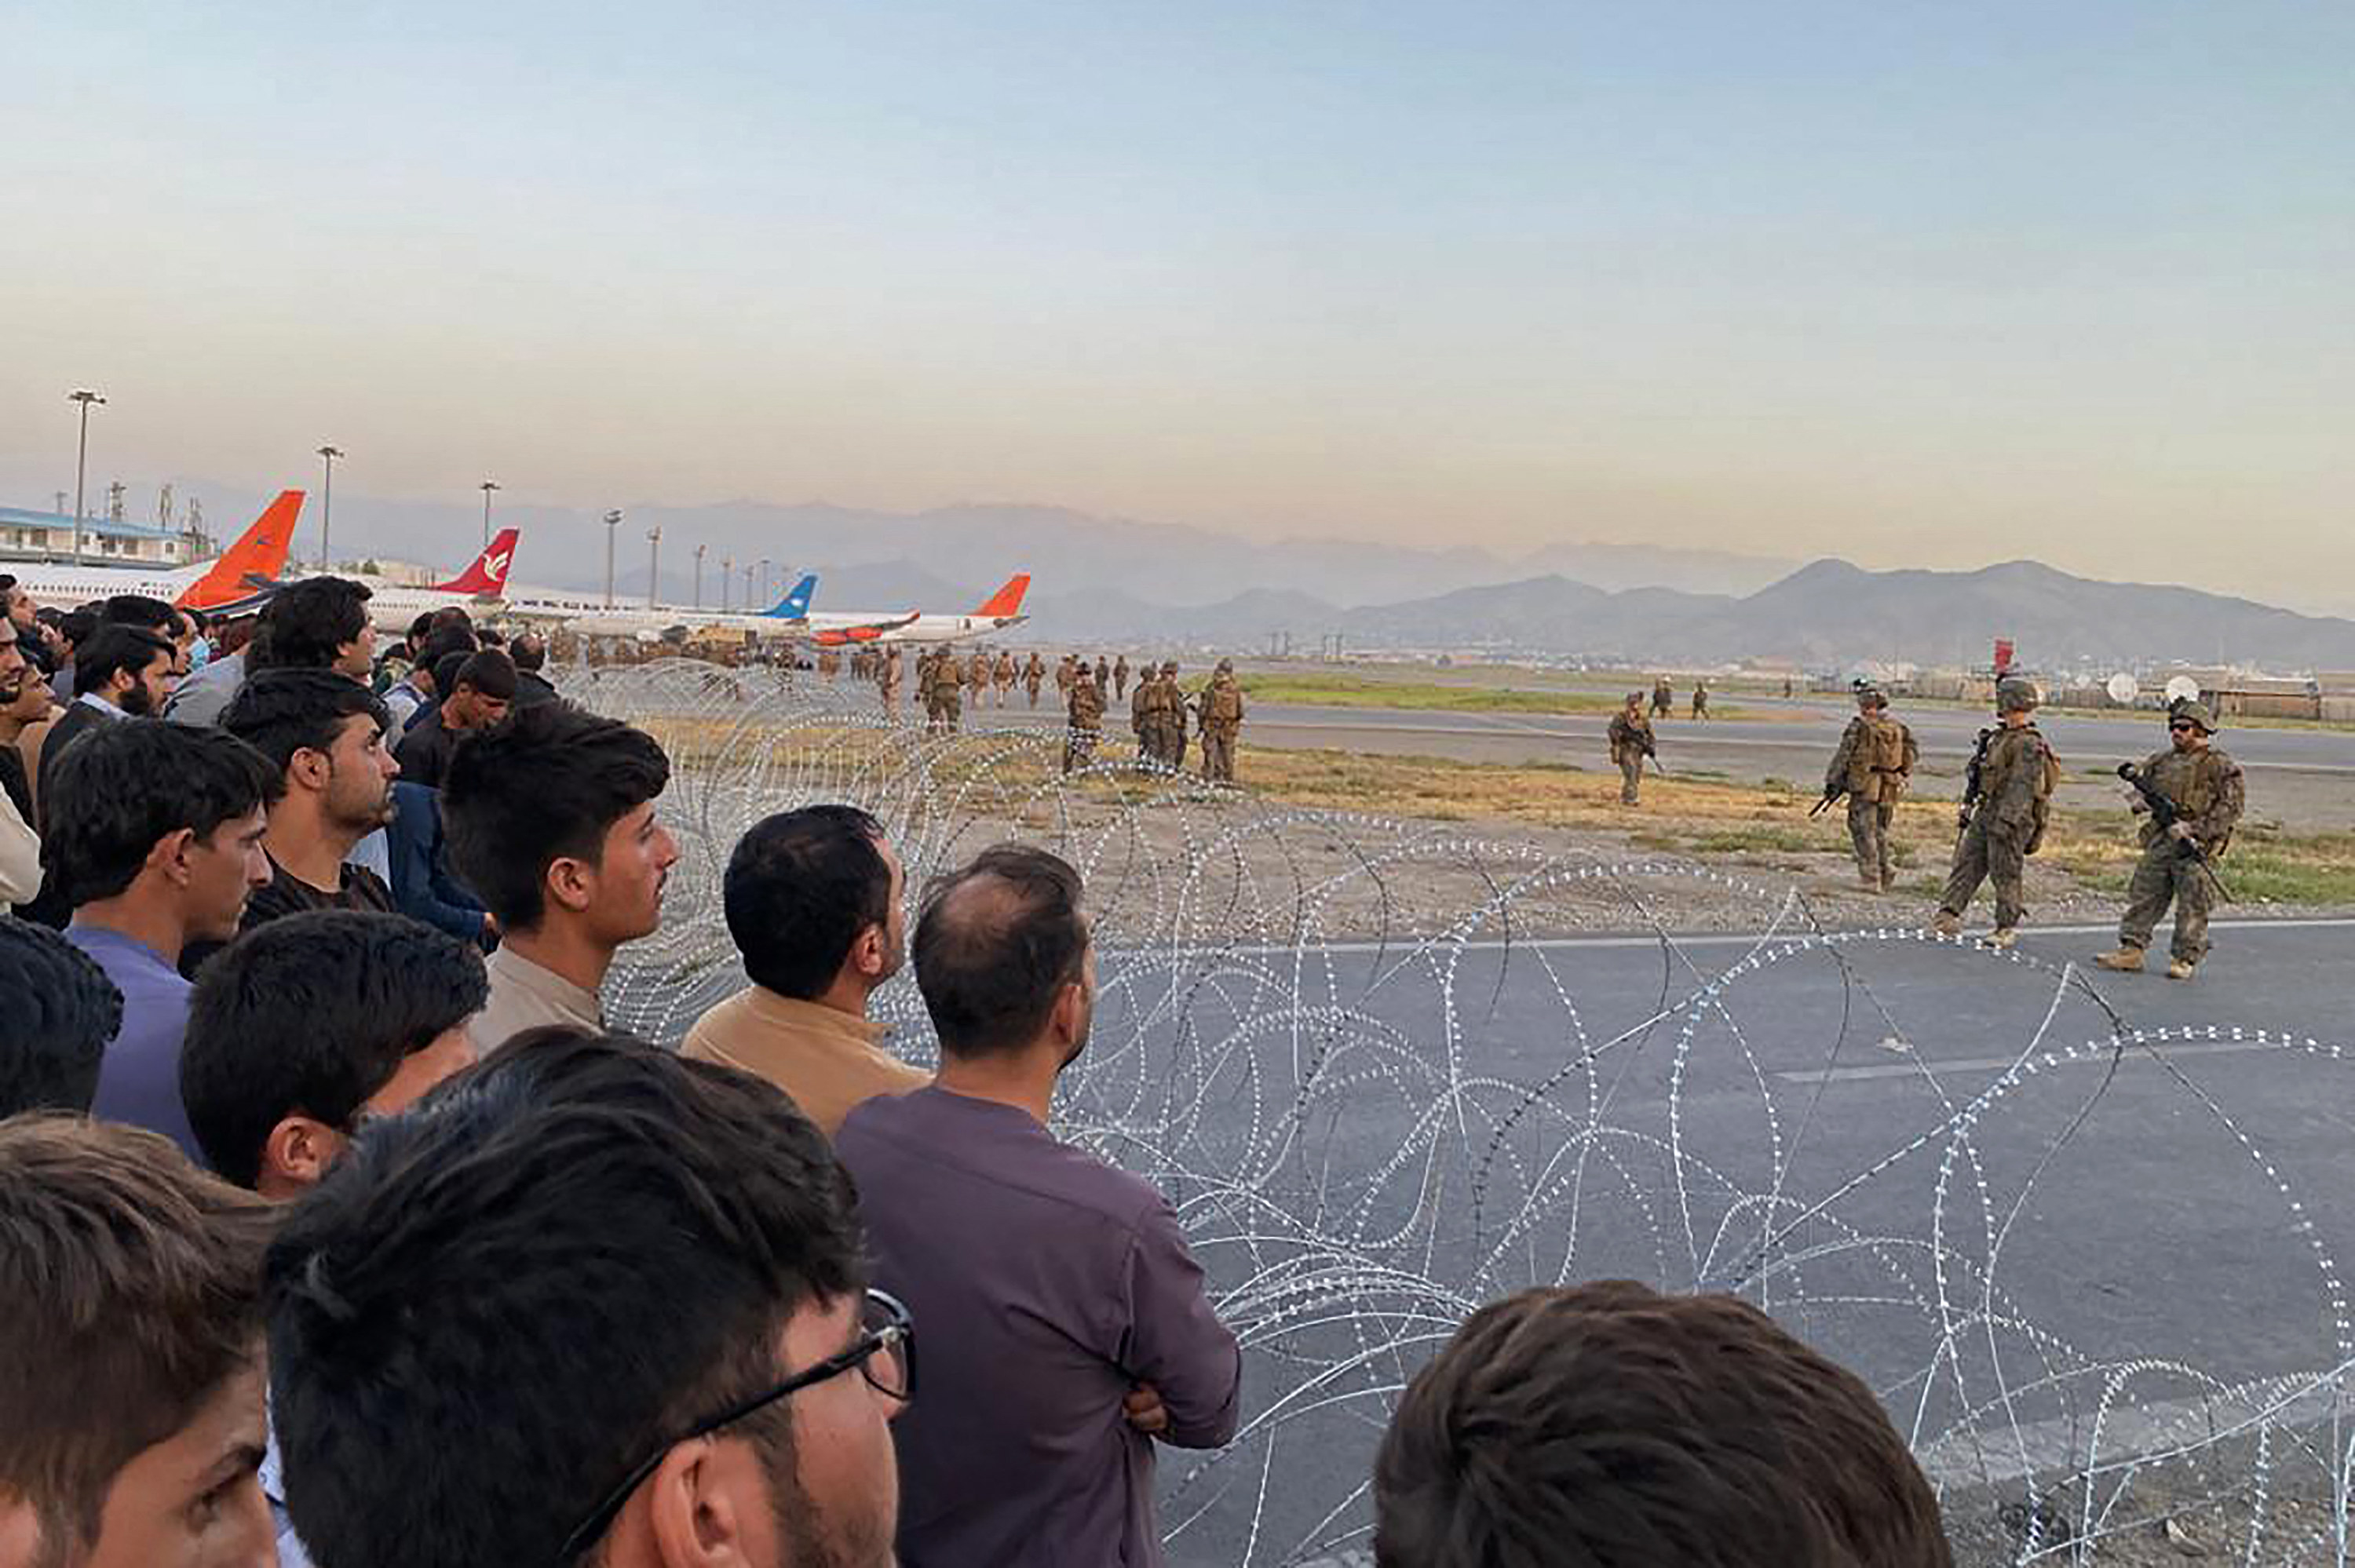 People behind barbed wire look out at planes and soldiers at the airport